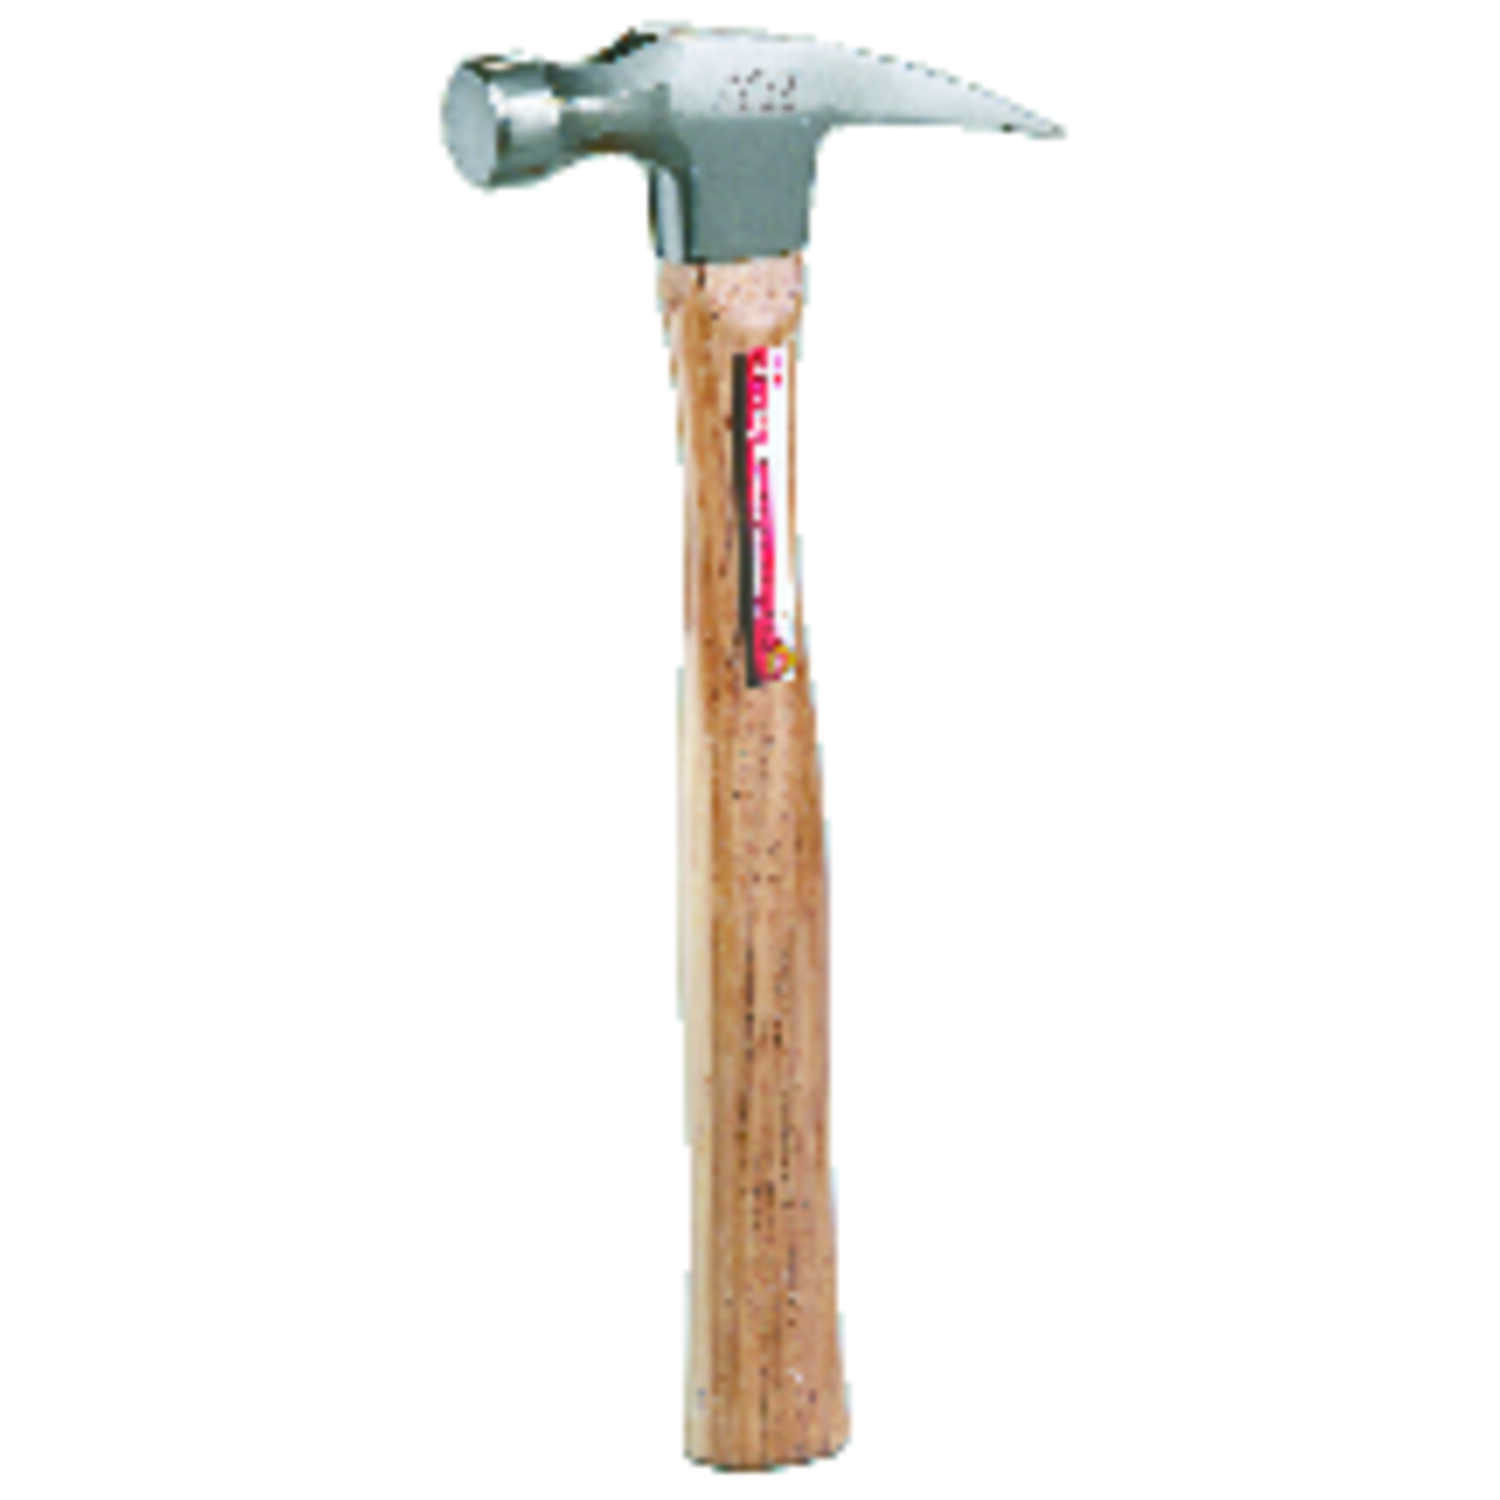 Ace  16 oz. Rip Claw Hammer  Forged Steel Head Hickory Handle  12.95 in. L